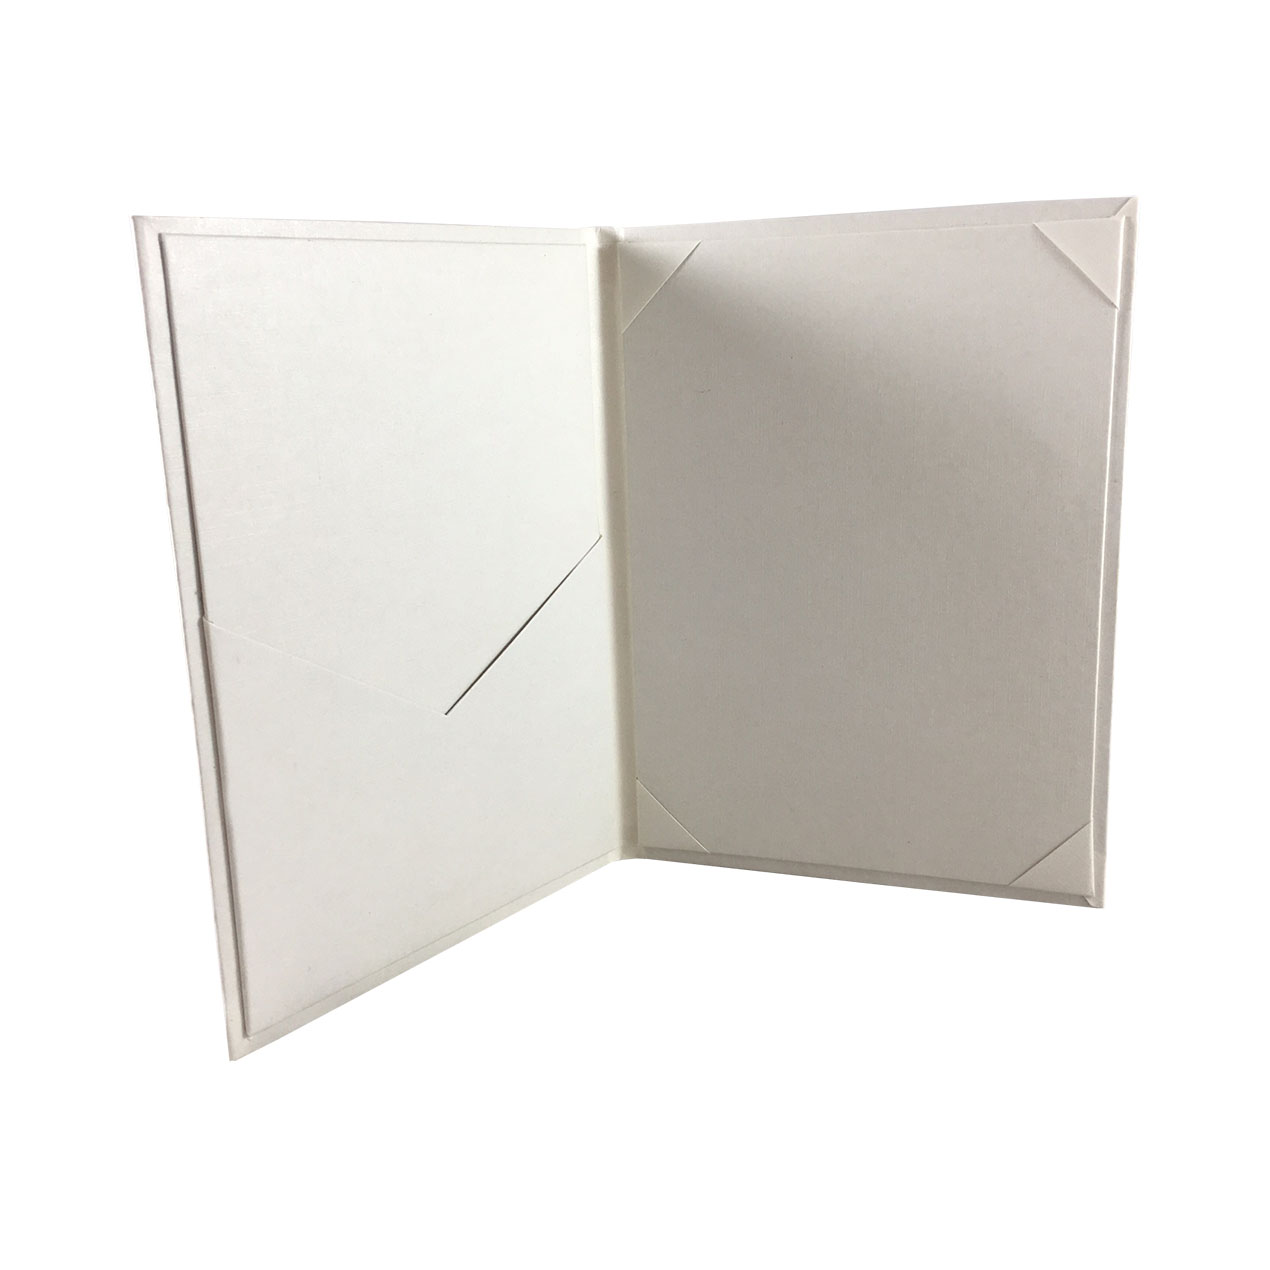 cardboard wedding invitation covered with art paper